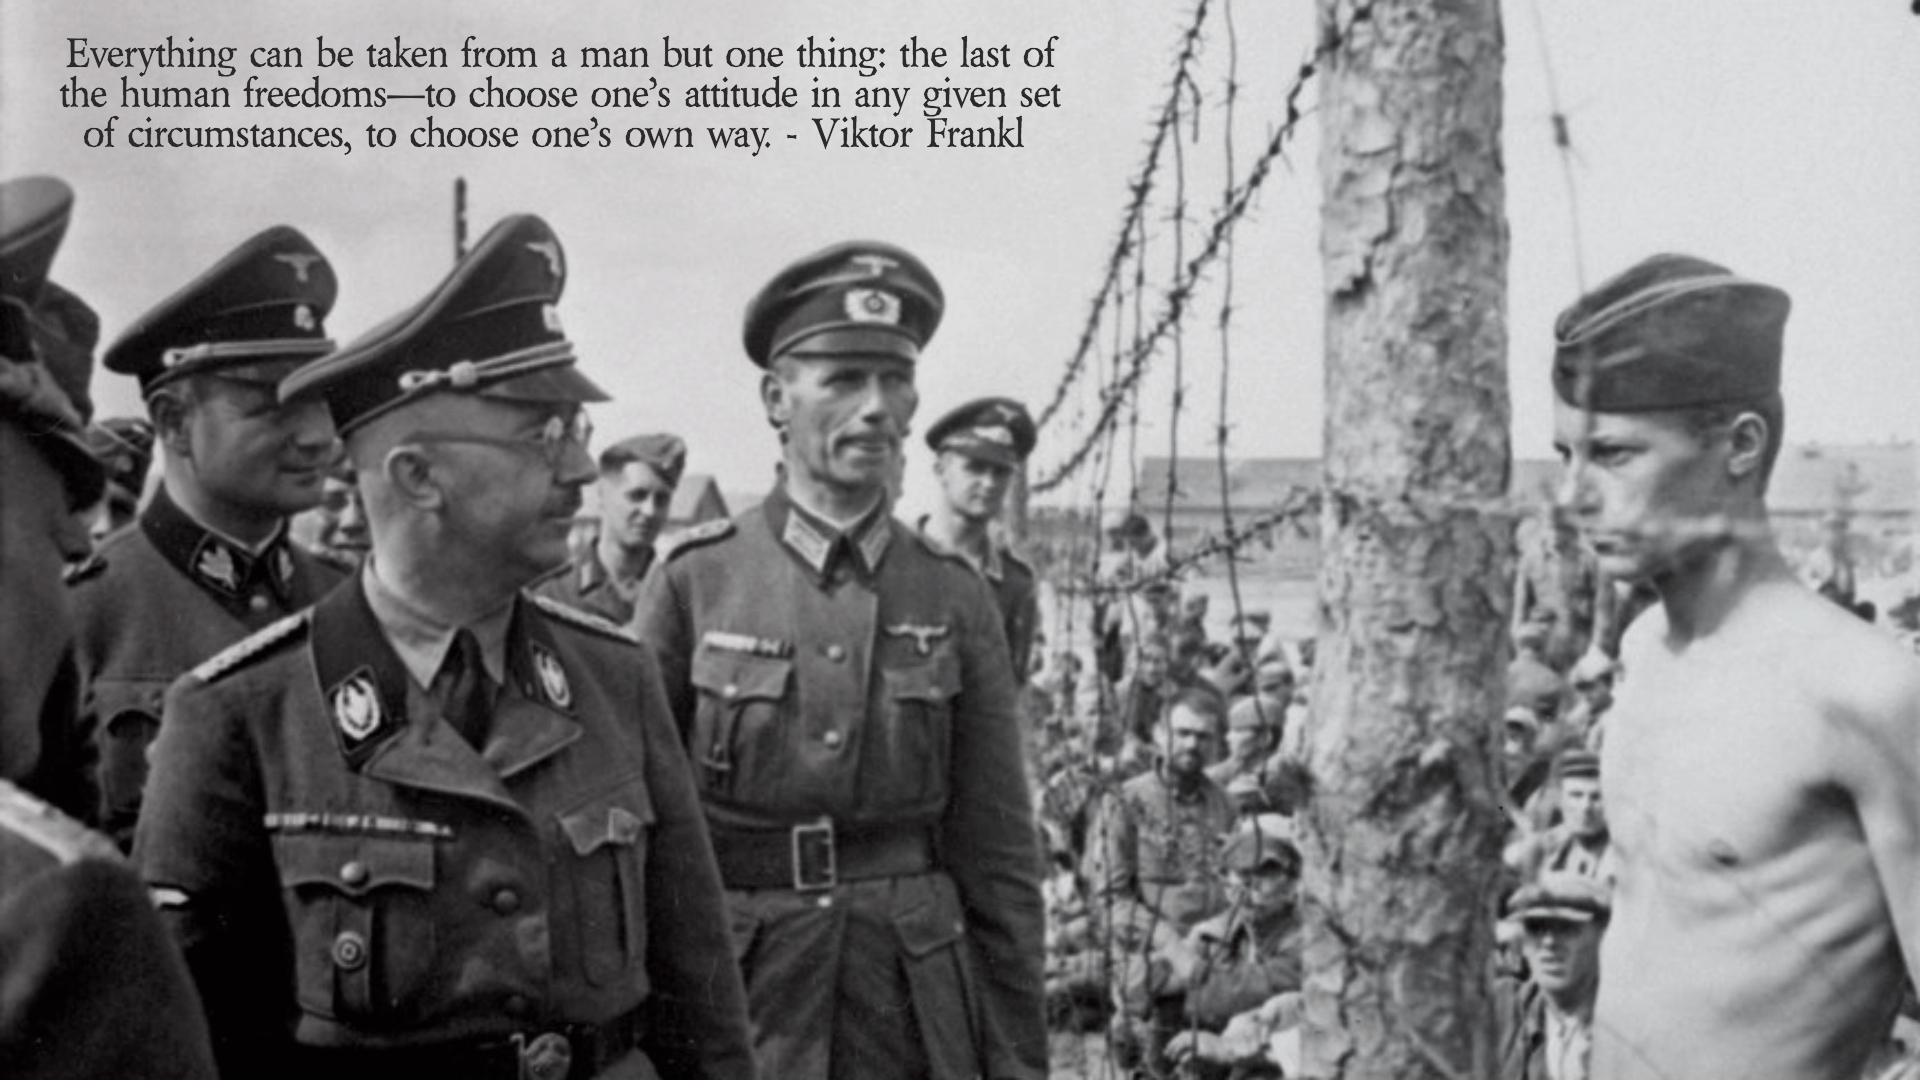 """Everything can be taken from a man but one thing."" – Viktor Frankl [1920×1080]"